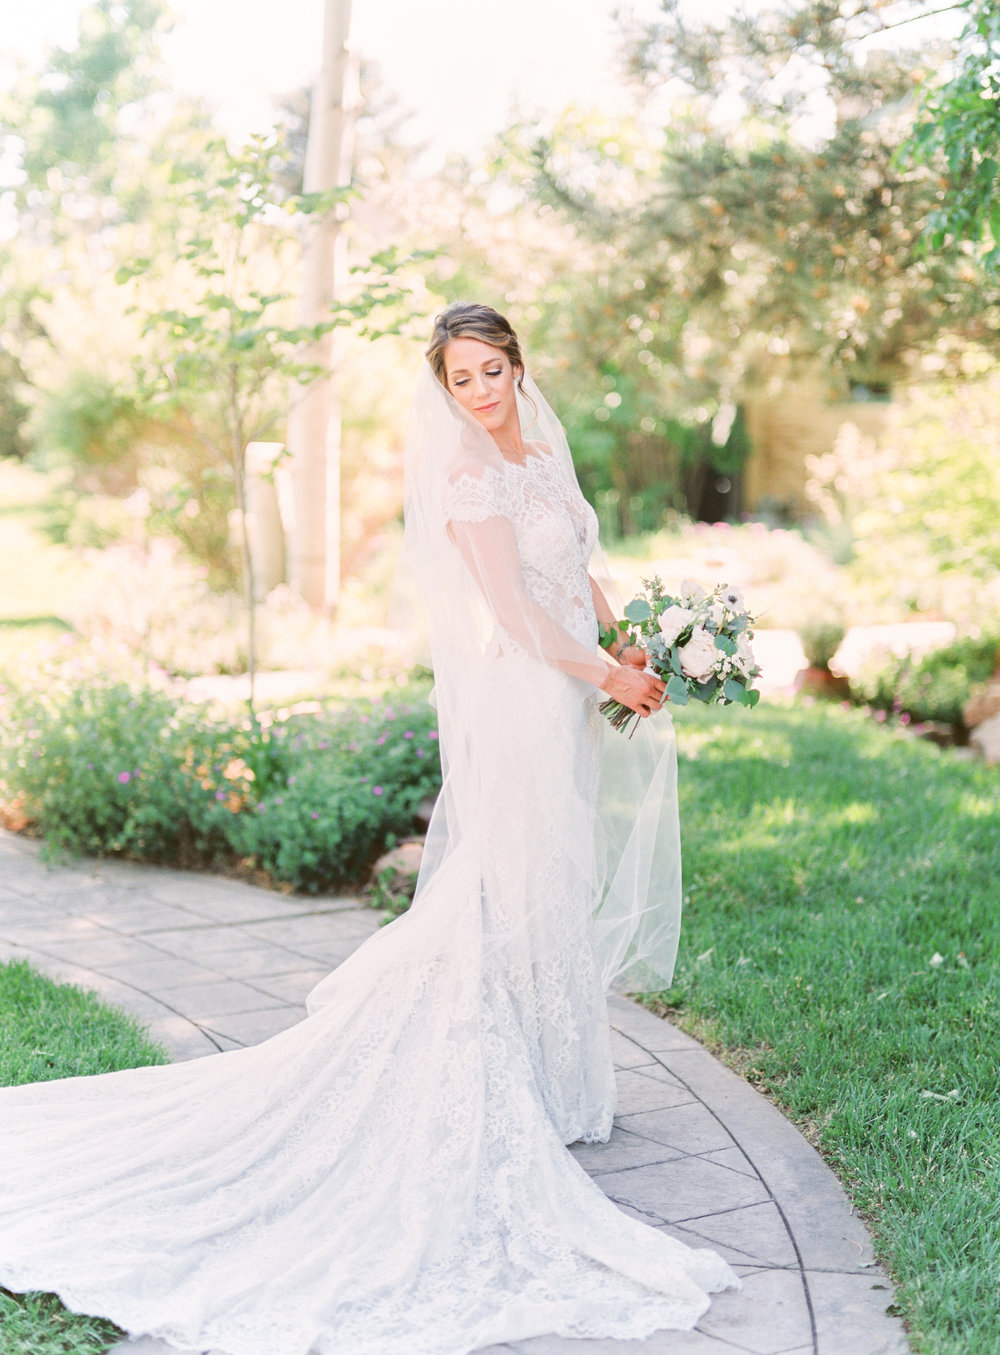 Kathryn-Allen-Boulder-wedding-2018-by-Lisa-ODwyer-147.jpg